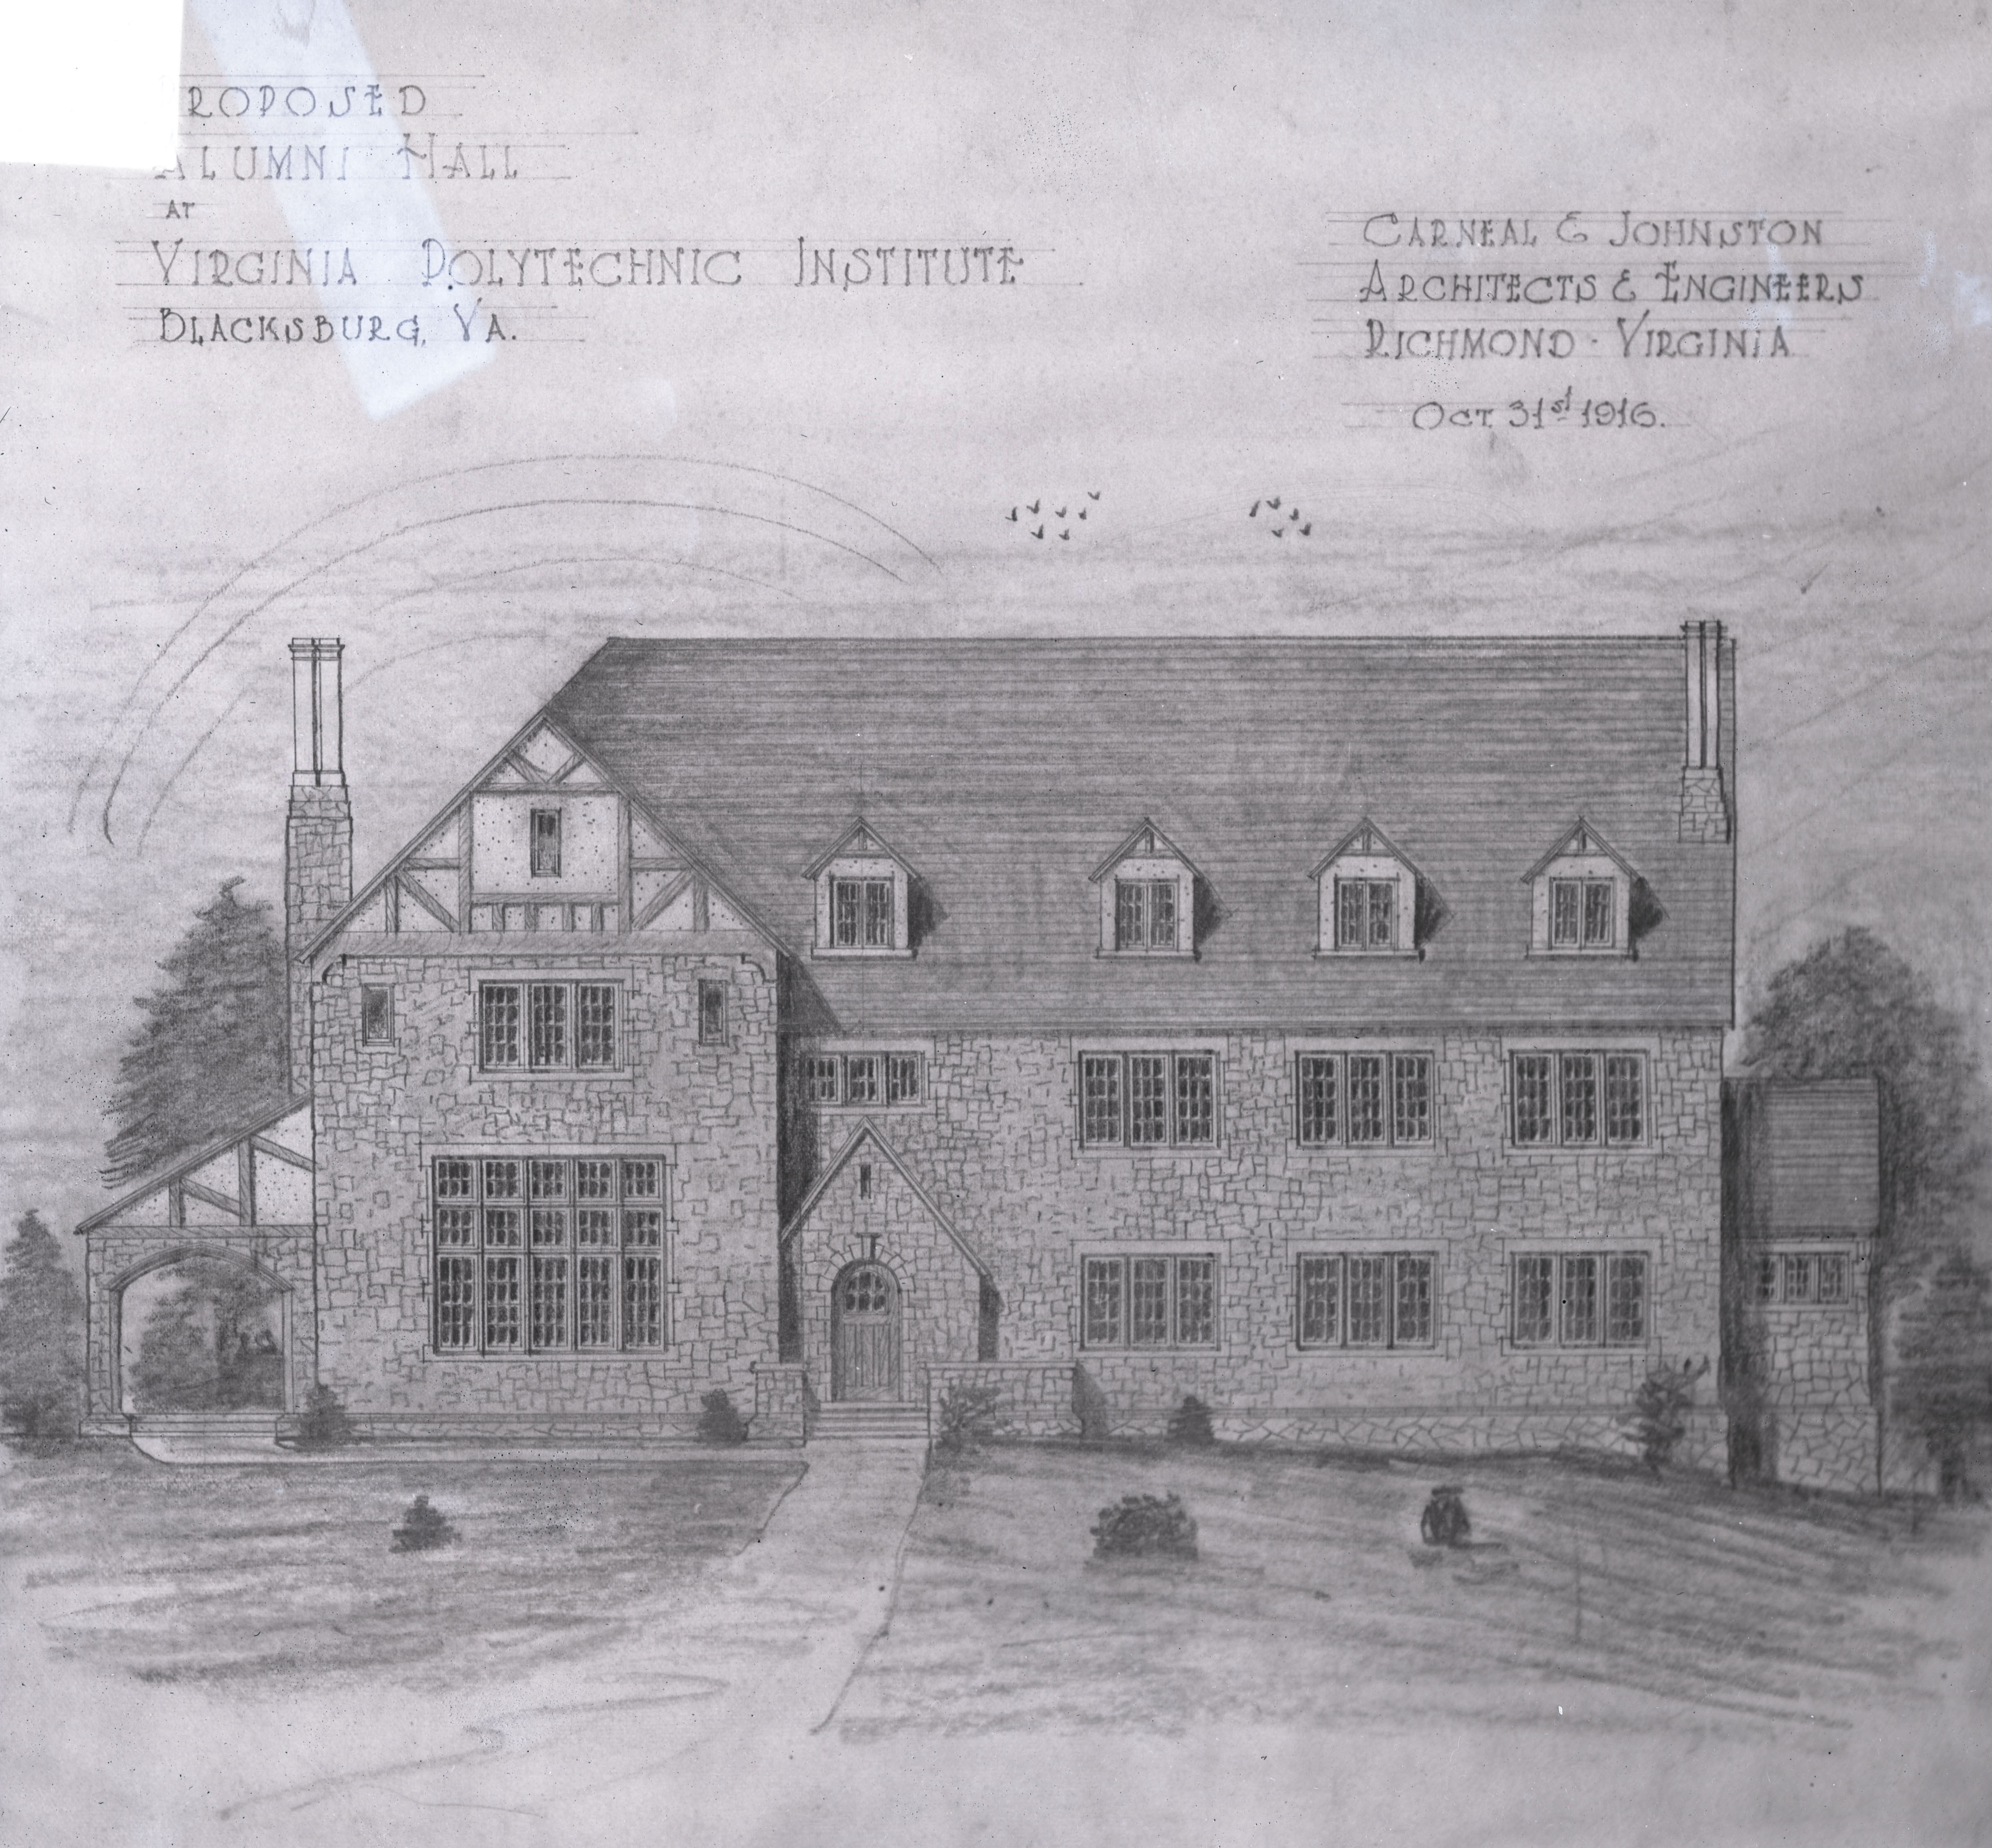 A drawing of a proposed alumni hall designed by Carneal and Johnston in 1916